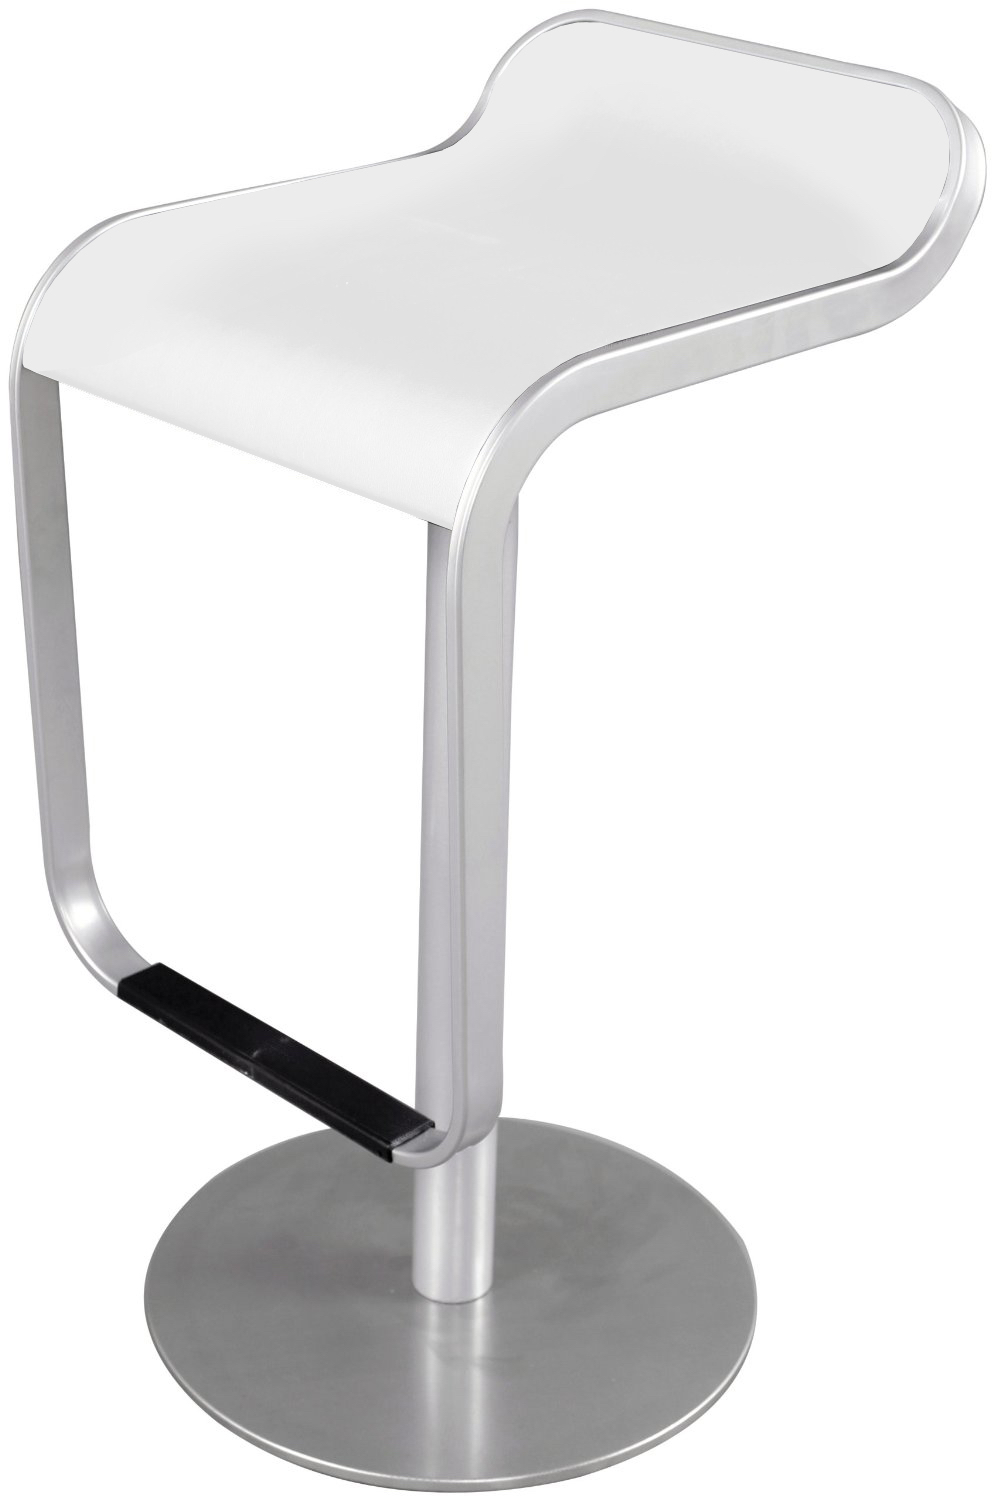 lem-stool-in-brushed-frame-white-seat.jpg ...  sc 1 st  Advanced Interior Designs & Lem Bar Stool With Brushed Frame - Lem Stools - Home and Office ... islam-shia.org